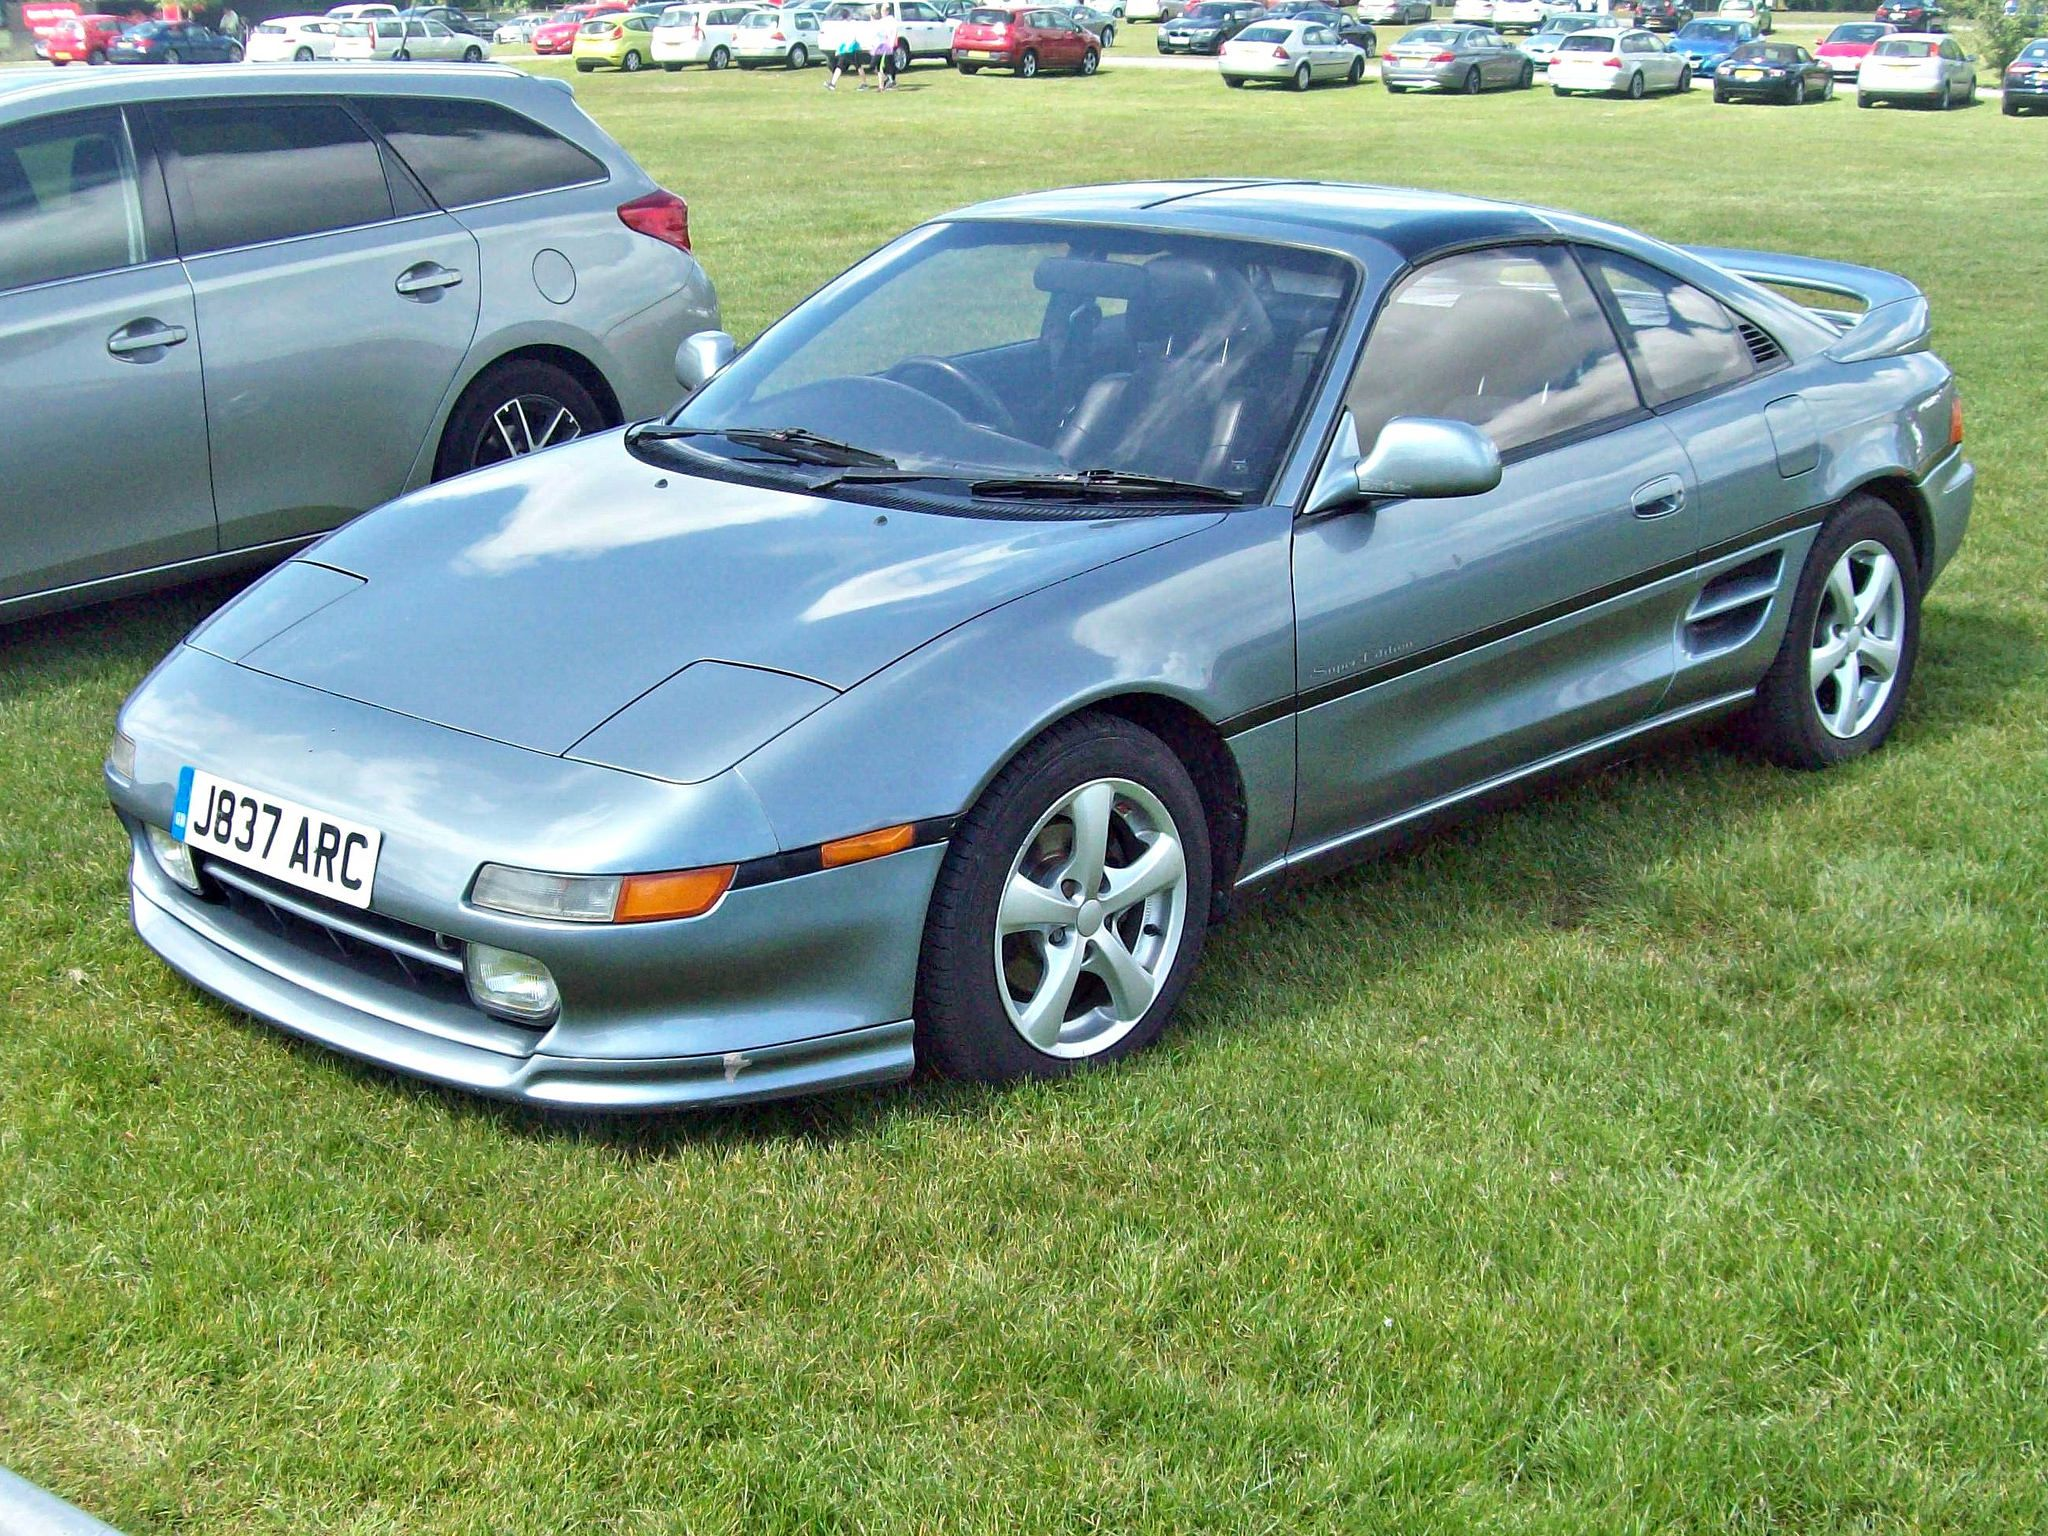 141 Toyota Mr2 Sw20 Super Edition 1991 In 2020 Toyota Mr2 Toyota New Cars